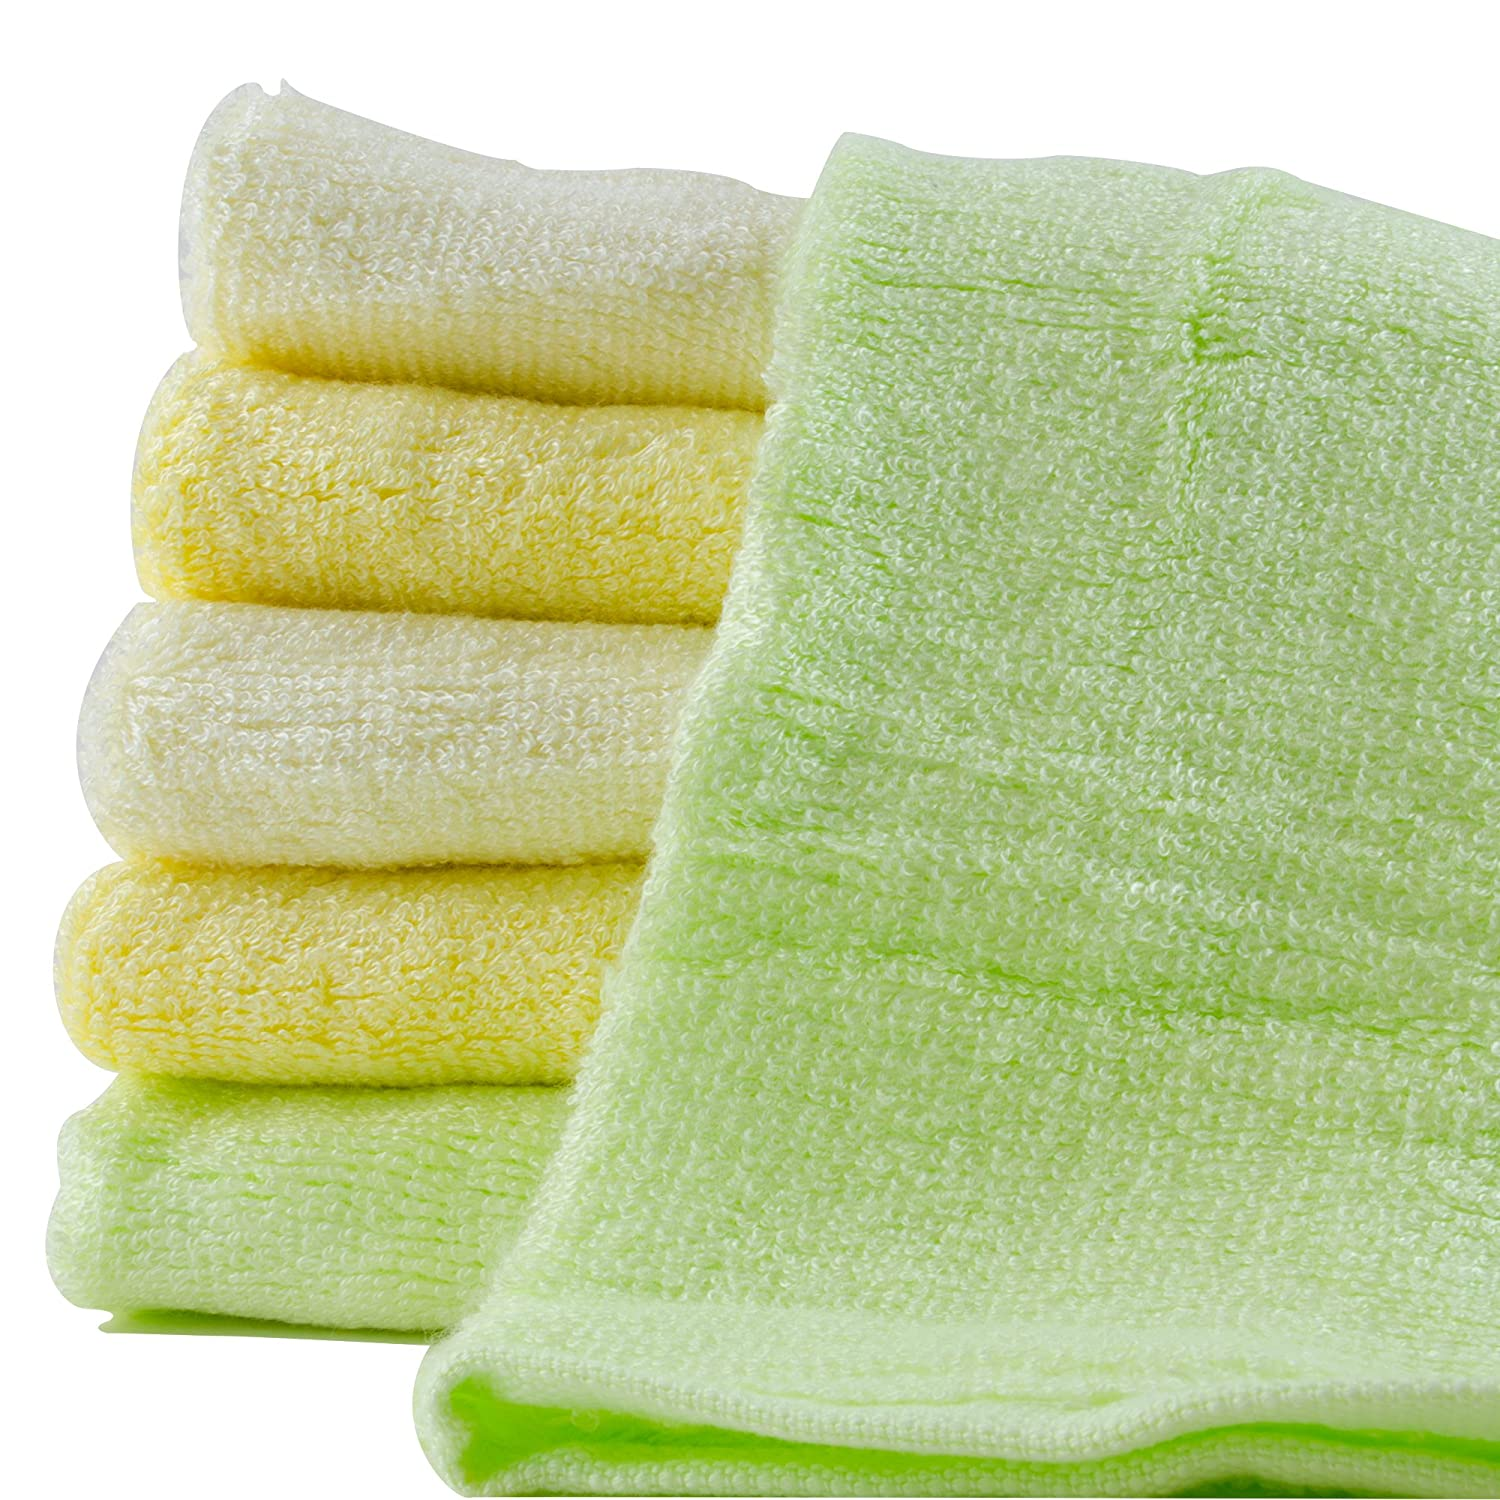 Amazon Bonzerdigs Bamboo Baby Towels 10 X 10 Inches Pack of 6